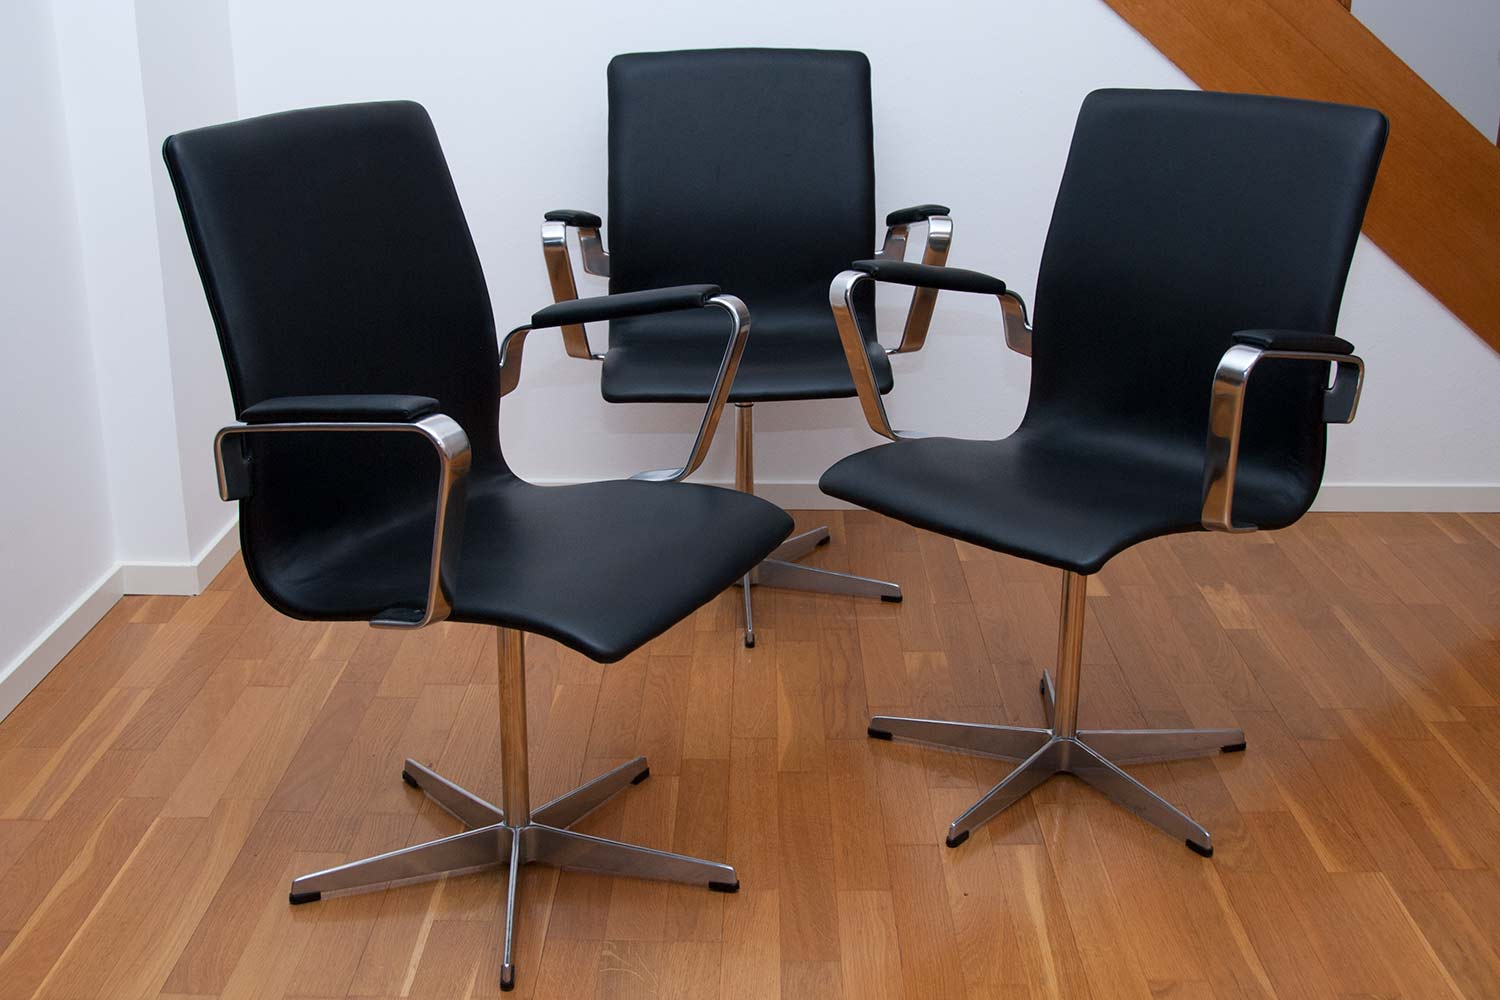 Arne jacobsen oxford chairs scandinavian design for Arne jacobsen chaise